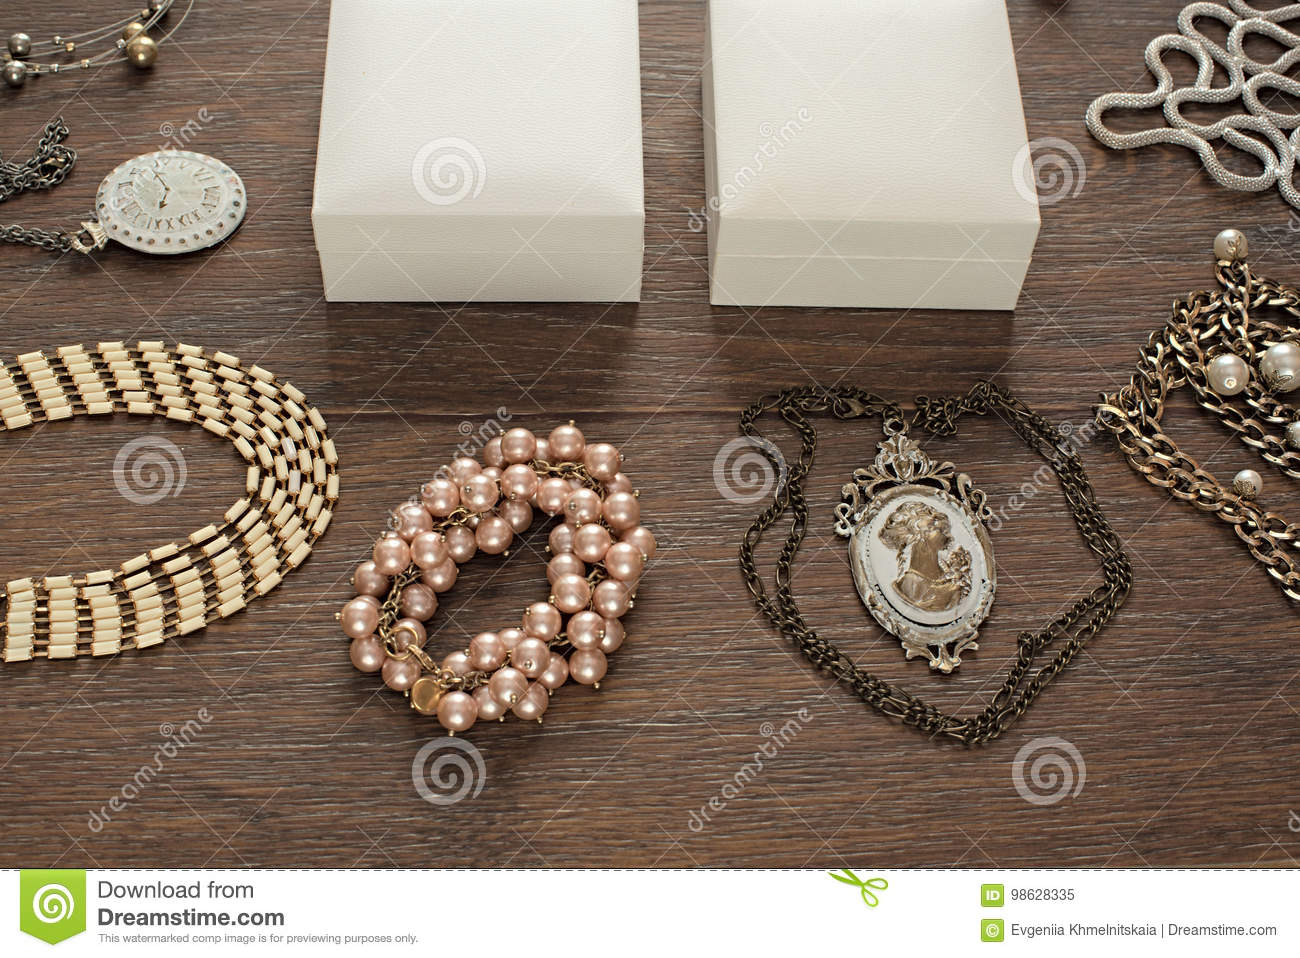 Vintage composition lay flat jewelry for women and gift packaging.